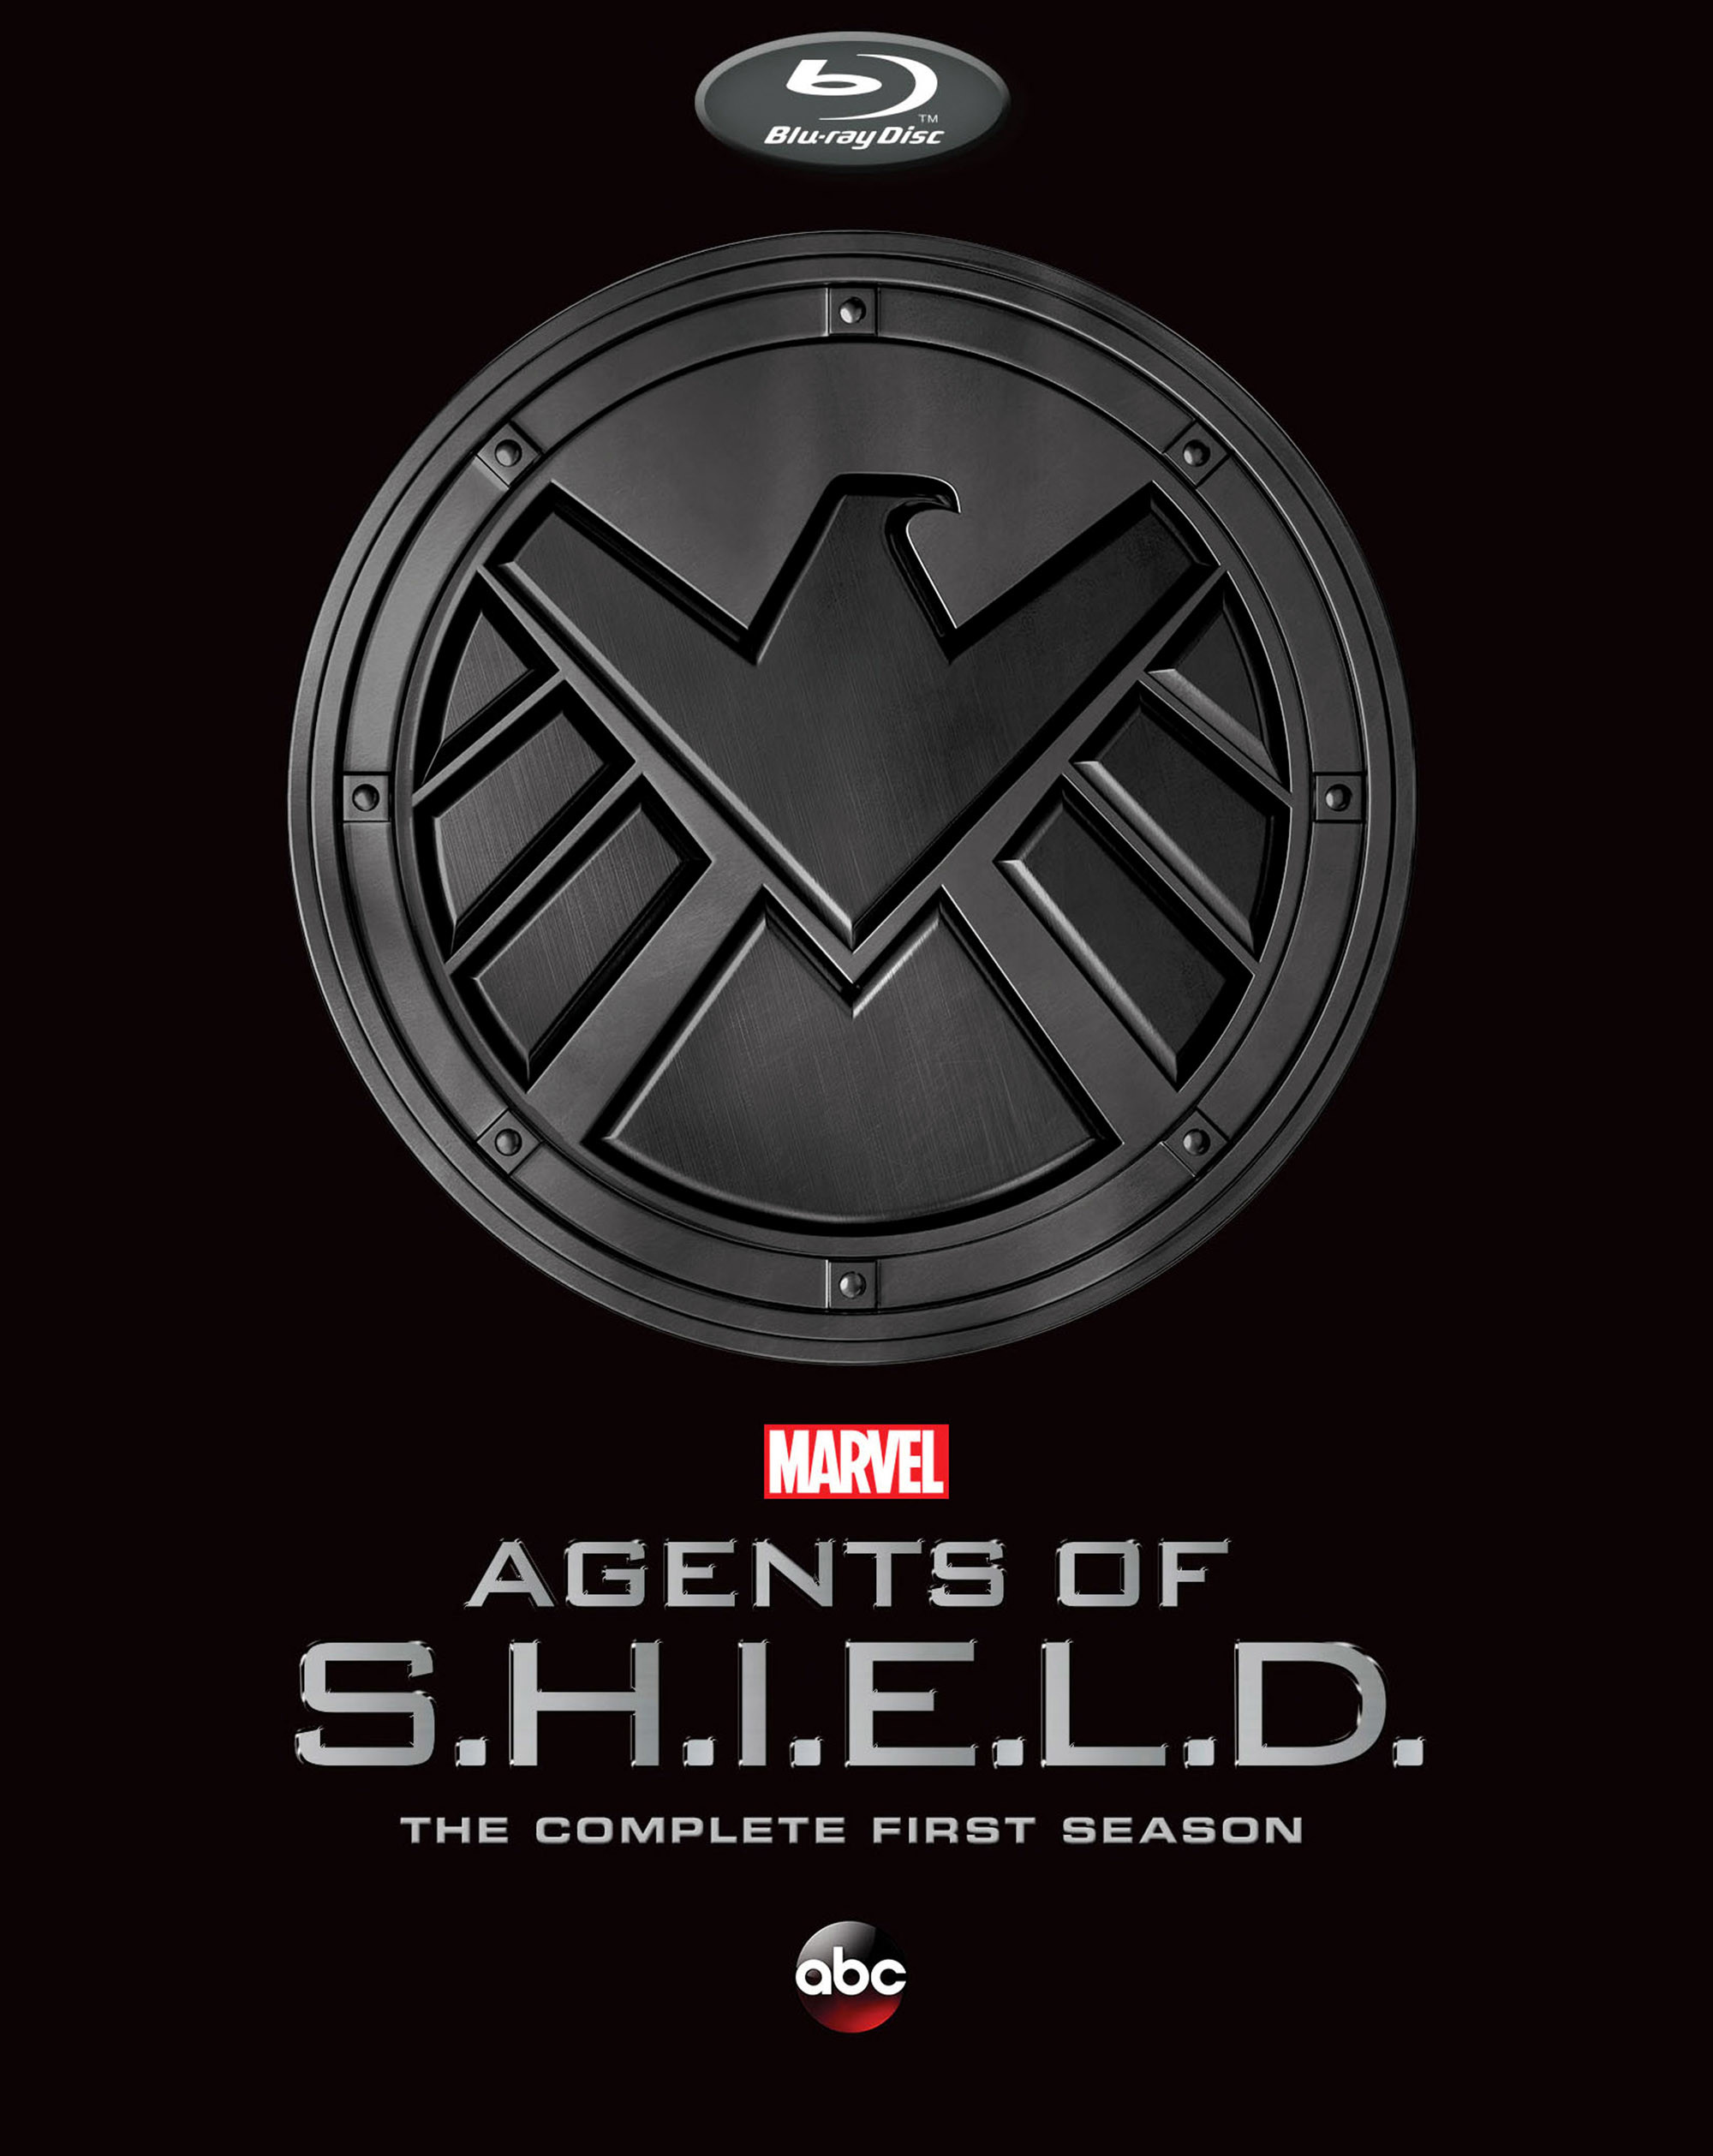 MARVEL Agents of SHIELD TV Series Season 1 Cast Promo Pictures | DVDbash